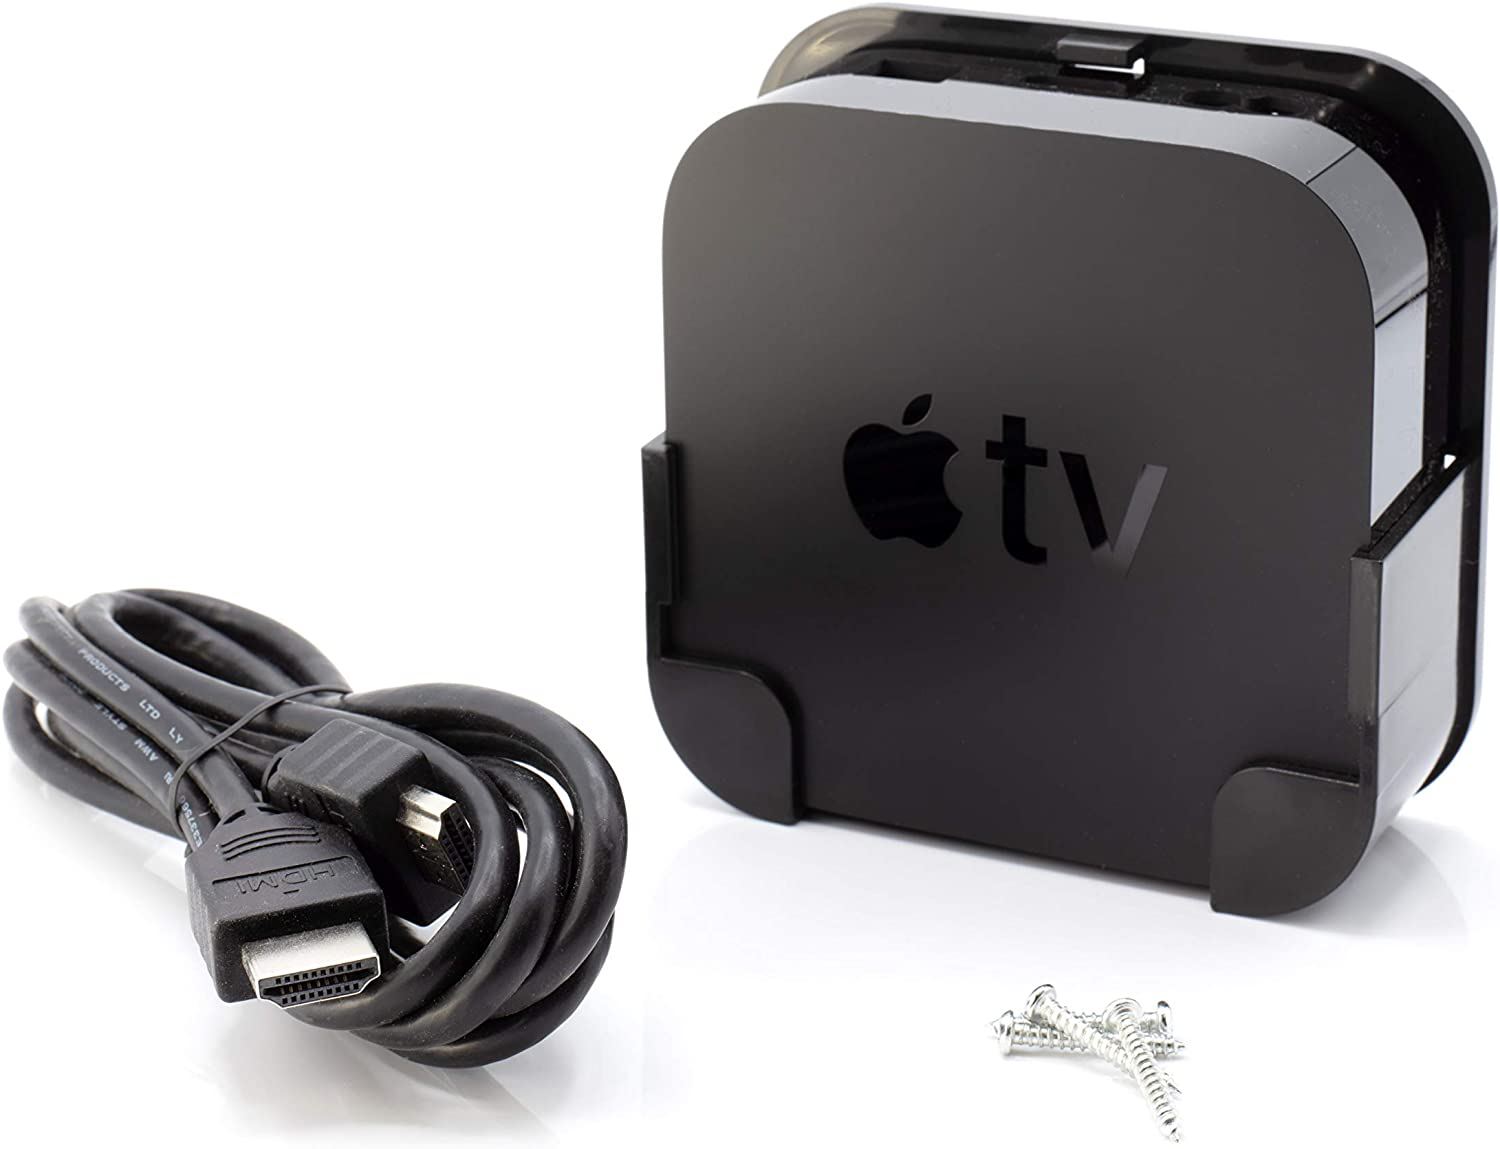 ATV 4K Mount - Compatible with 4th Generation Media Players - Easy Wall Mounting System - Includes a Premium HDMI Cable - Black (Works with Apple tv 4, and 4K)